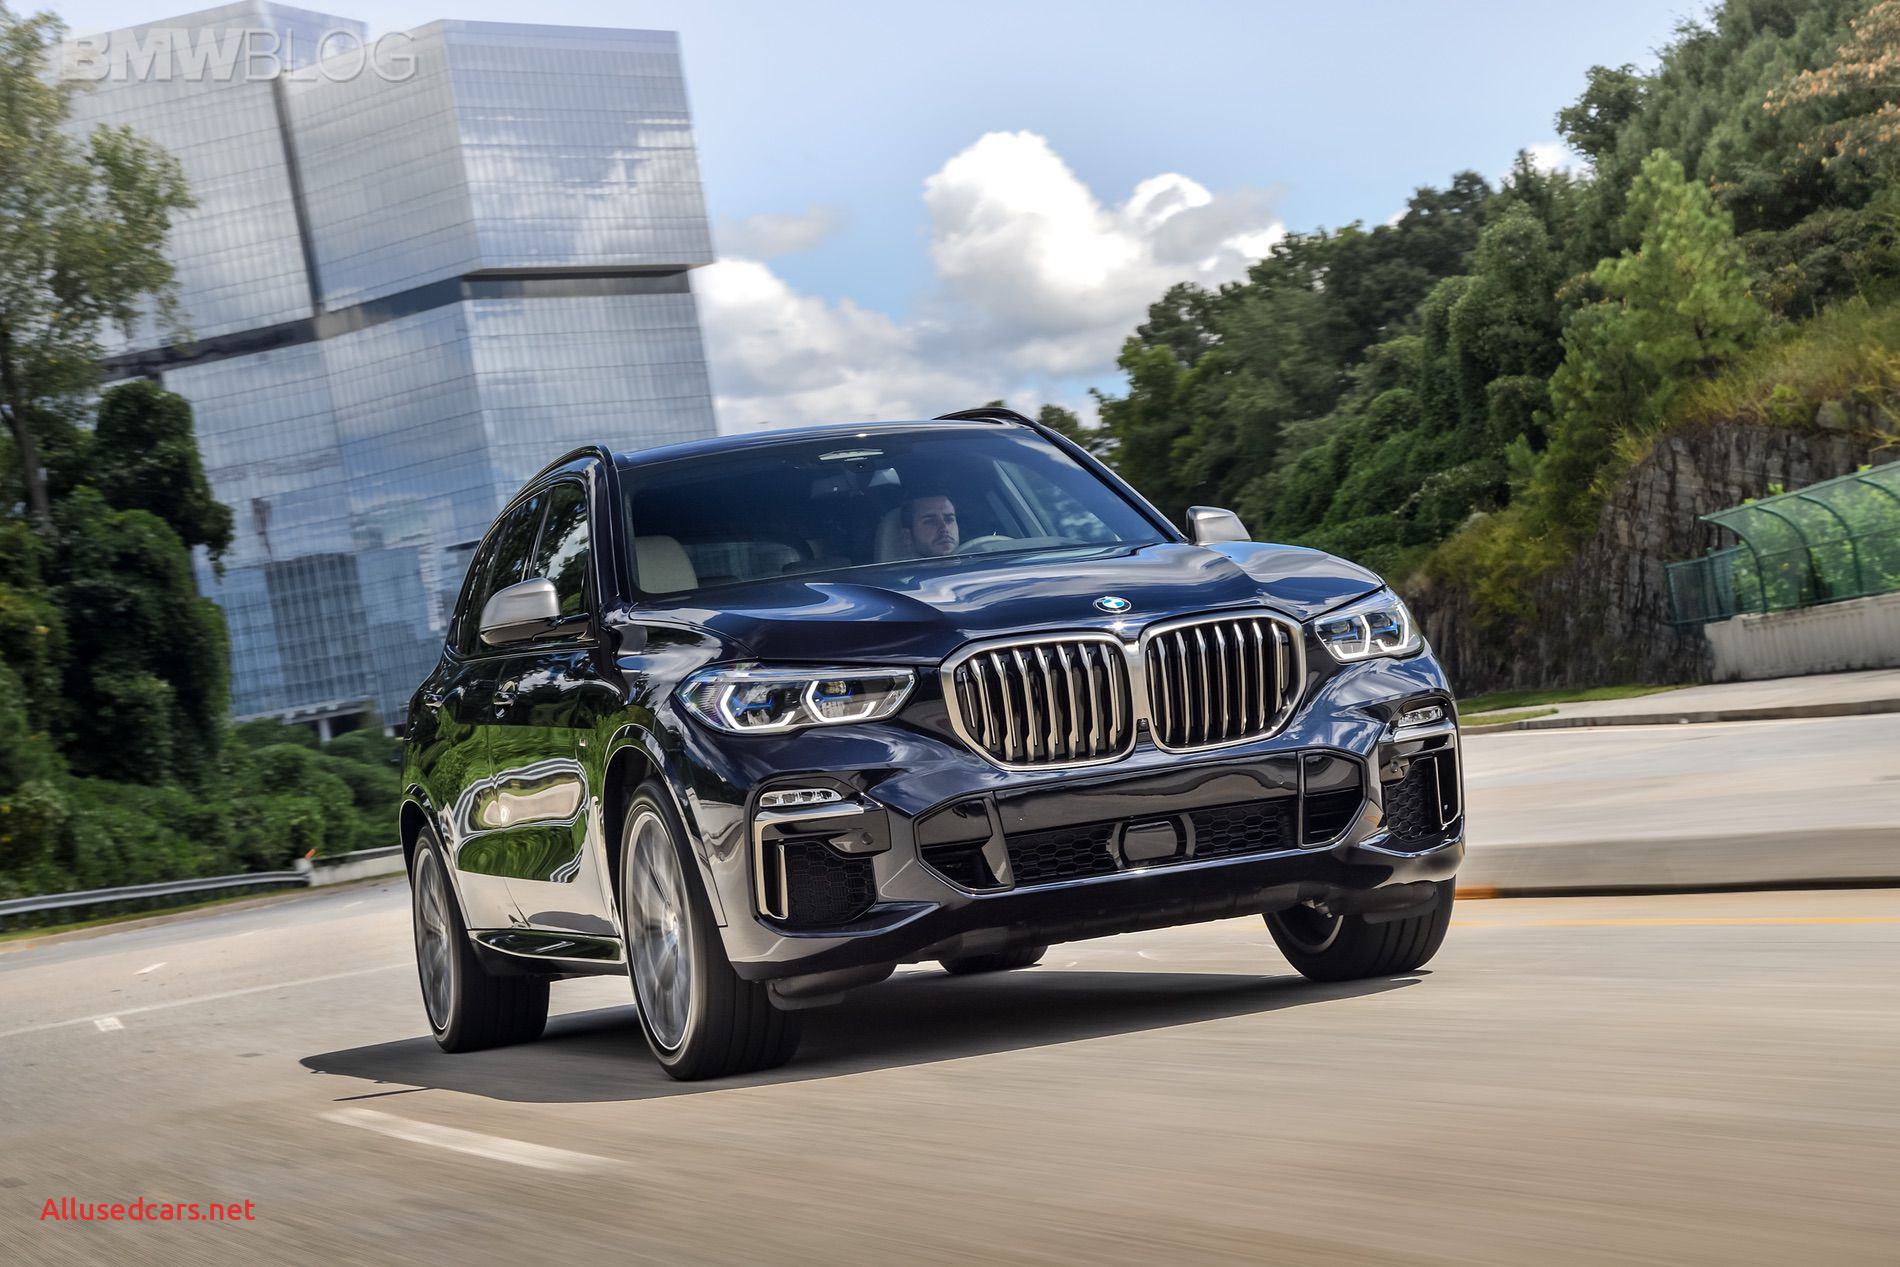 Bmw 1m for Sale Unique 2019 Bmw X5 M50d New Gallery